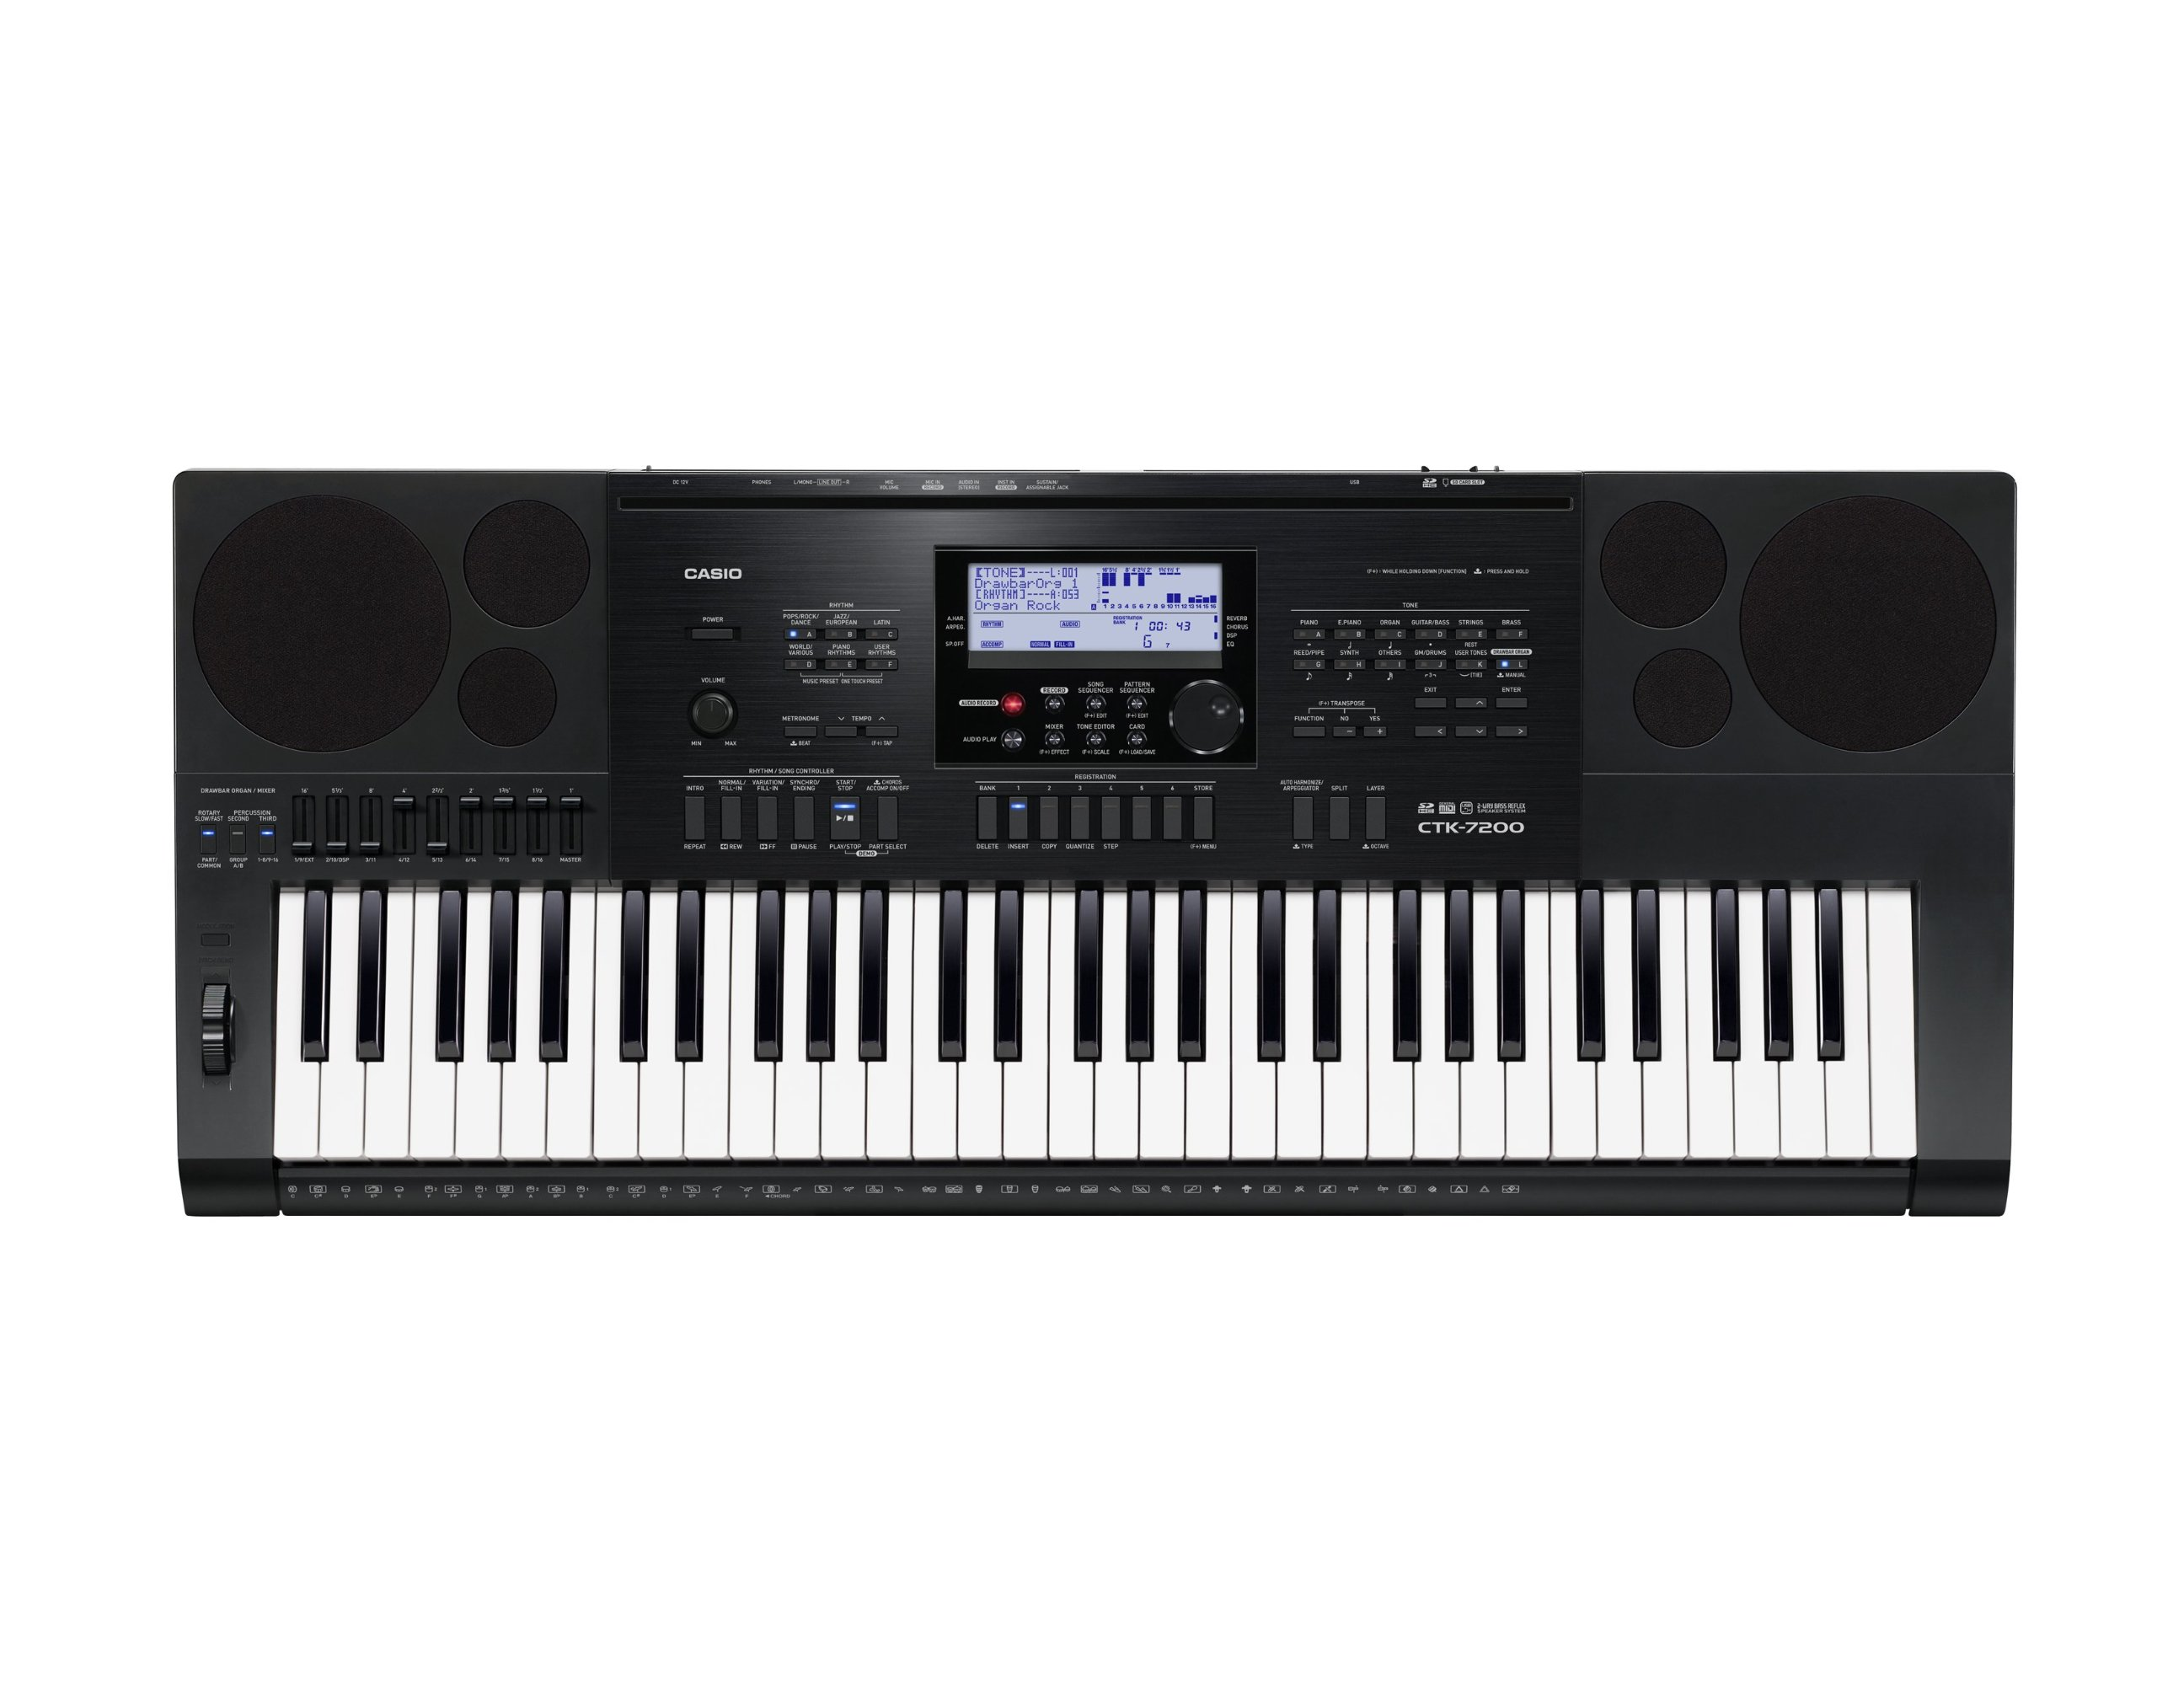 Casio WK 7600 vs casio ctk 7200